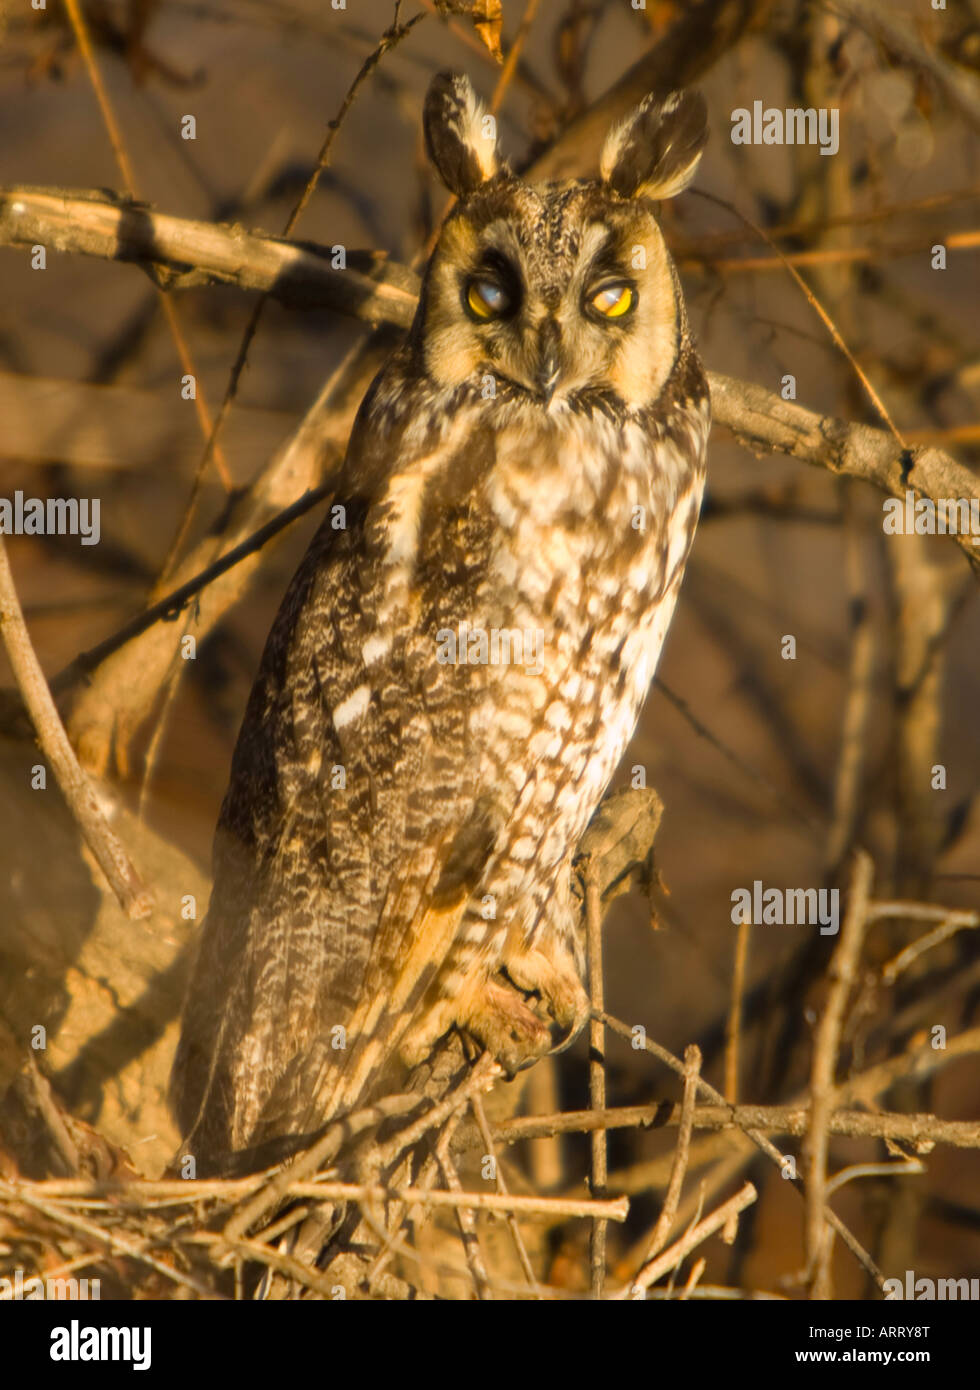 Long Eared Owl Asio otus Canyon Lake Riverside County California United States - Stock Image